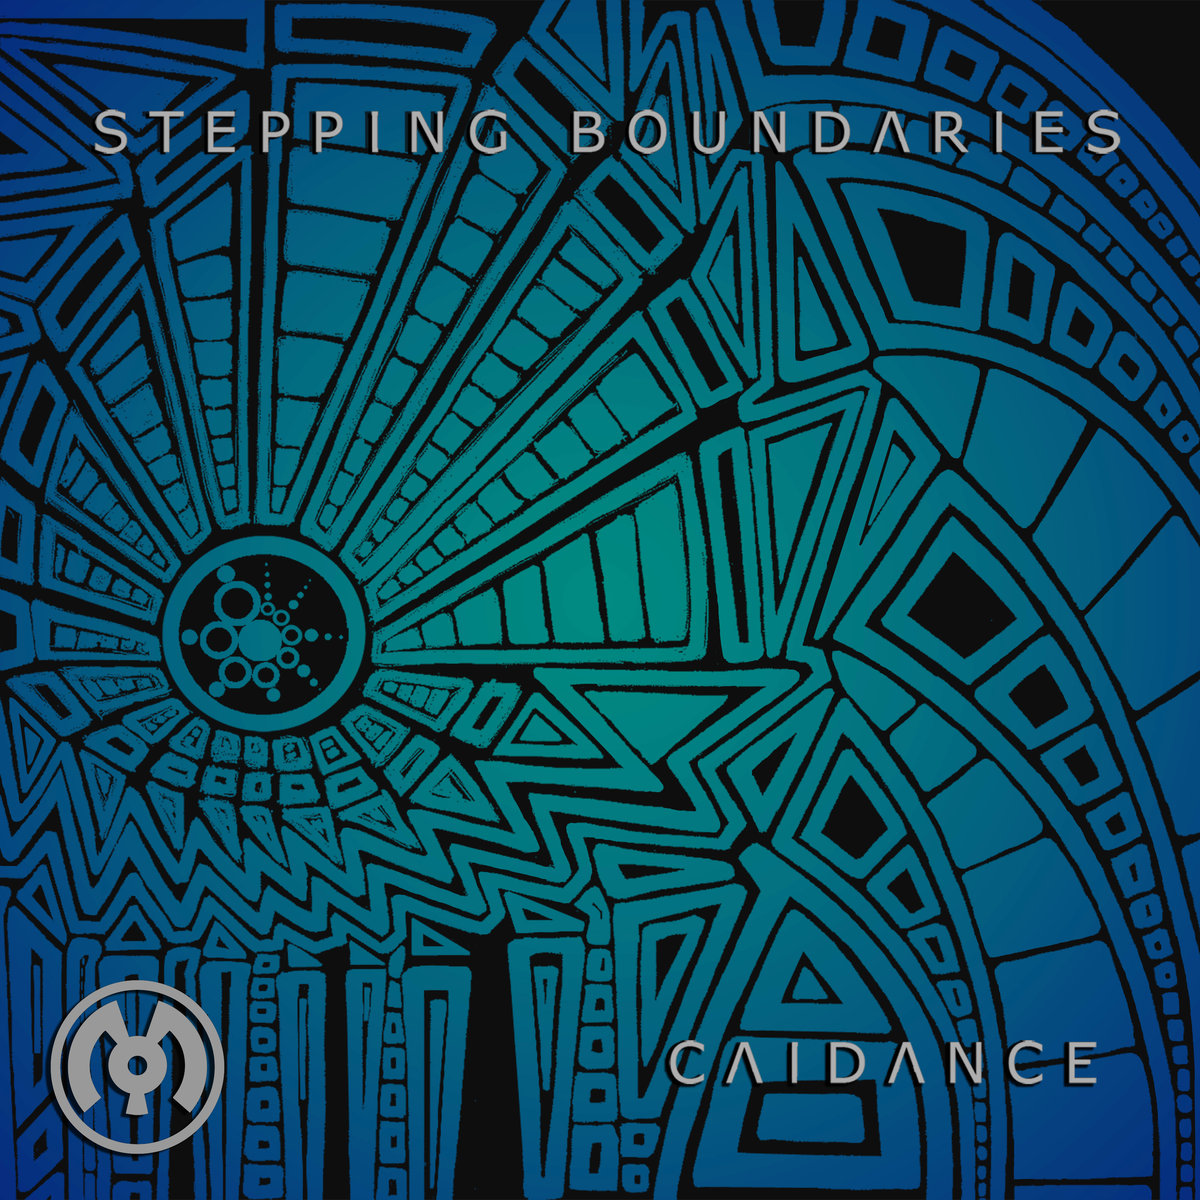 Caidance - SubTropic @ 'Stepping Boundaries' album (electronic, dubstep)